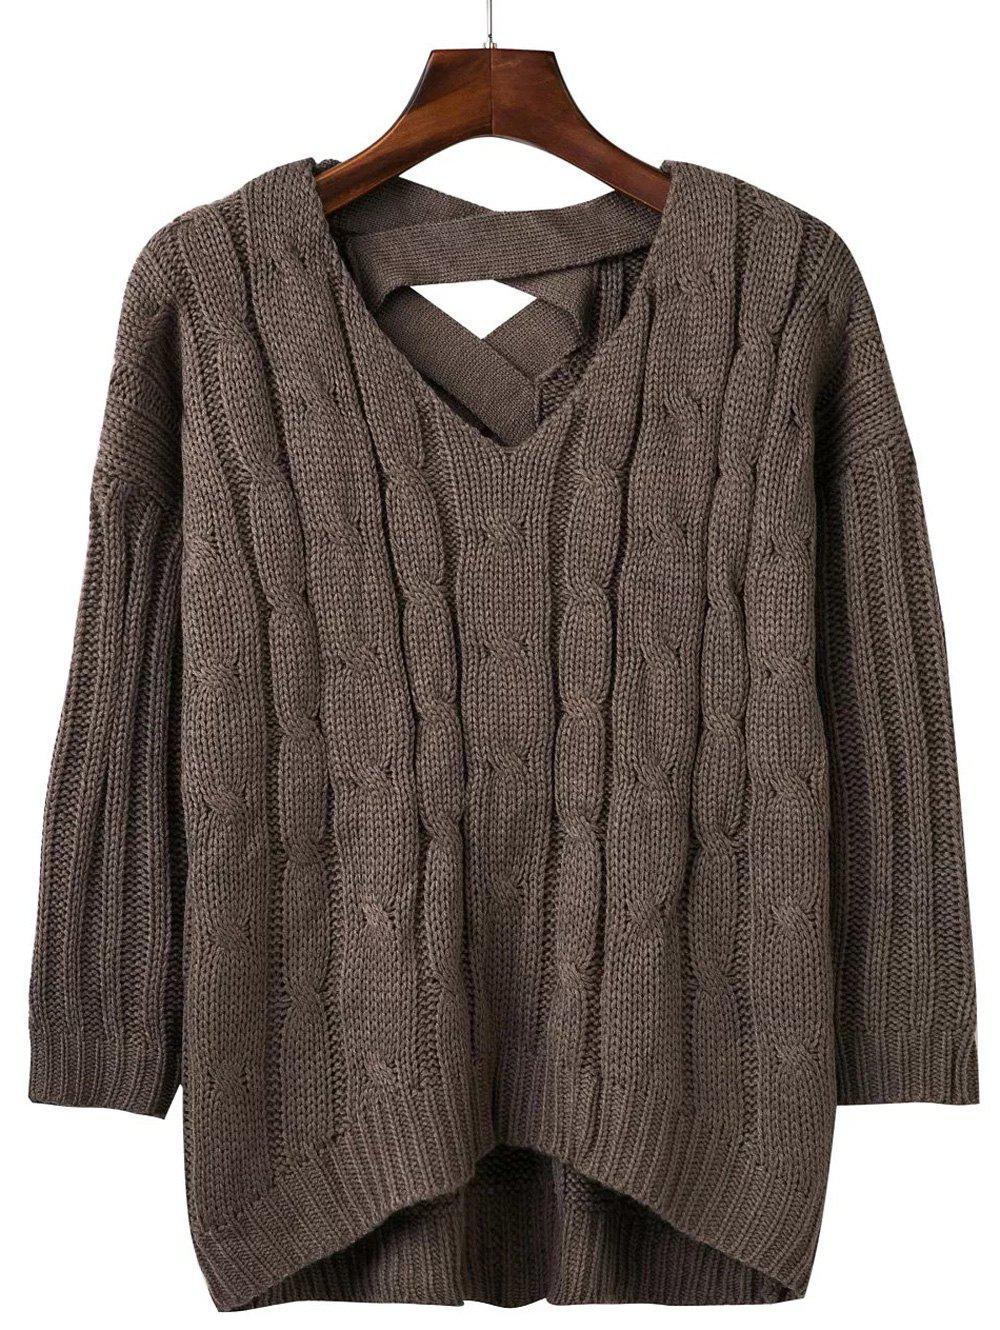 Cheap Loose Criss Cross Cable Knitted Sweater